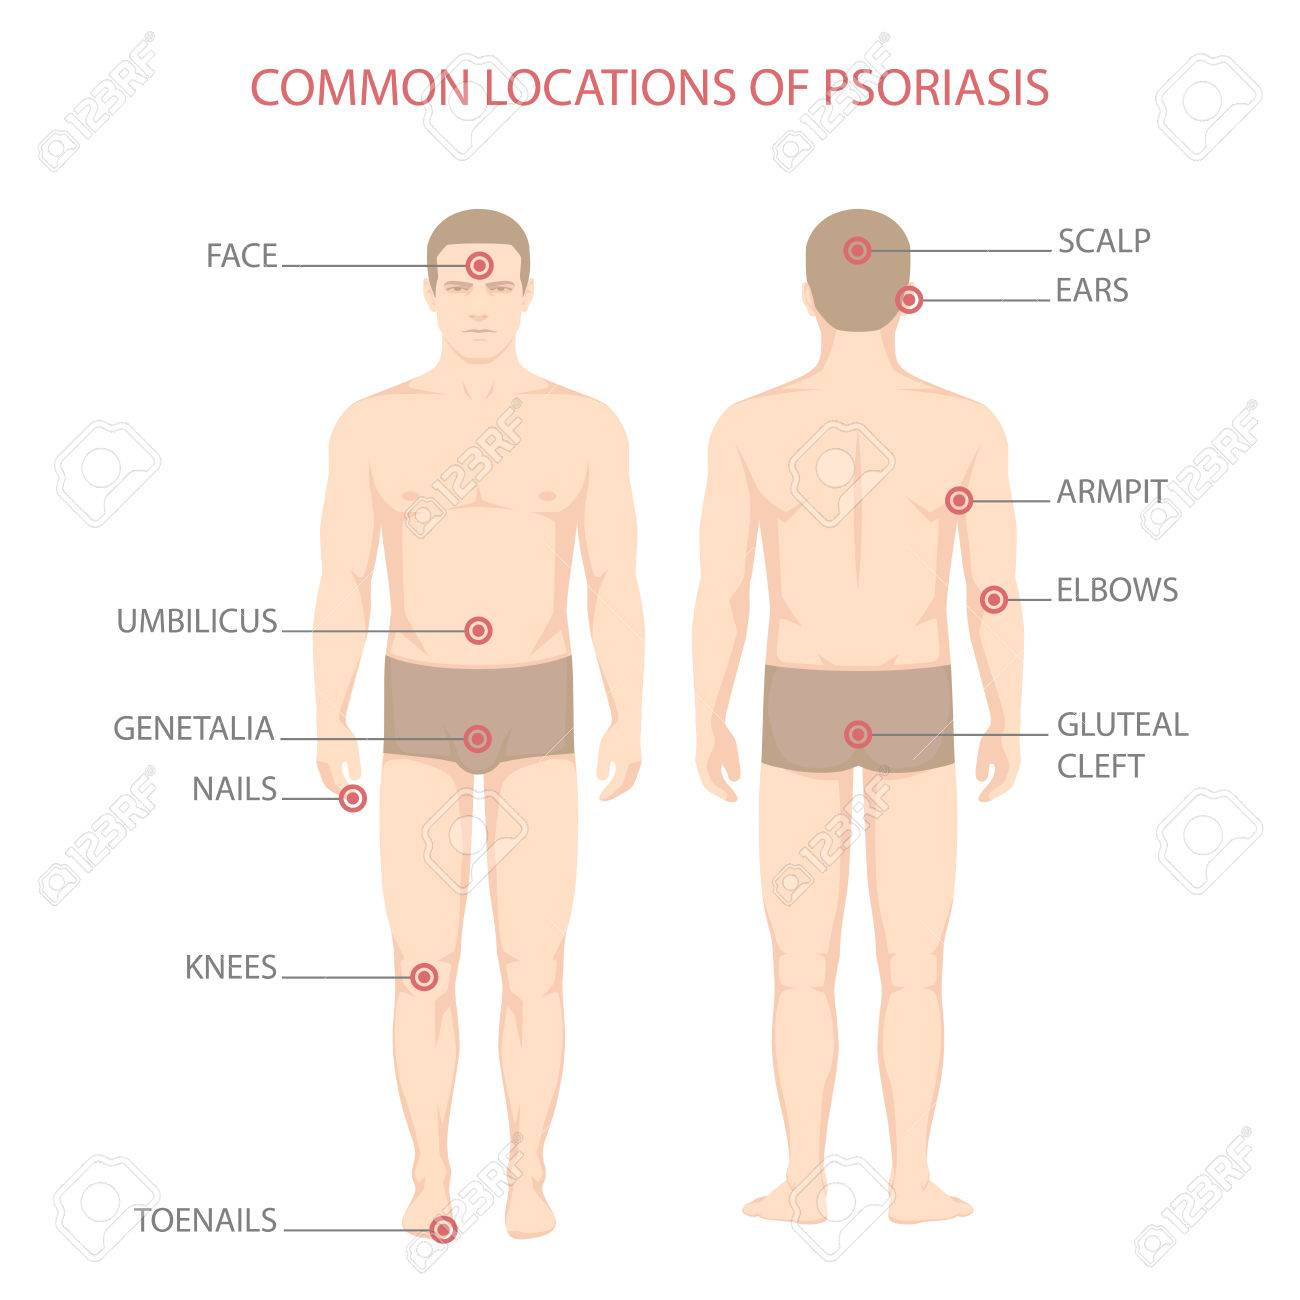 Psoriasis Illness Diagram Human Body Skin Disease Royalty Free Cliparts Vectors And Stock Illustration Image 84157464